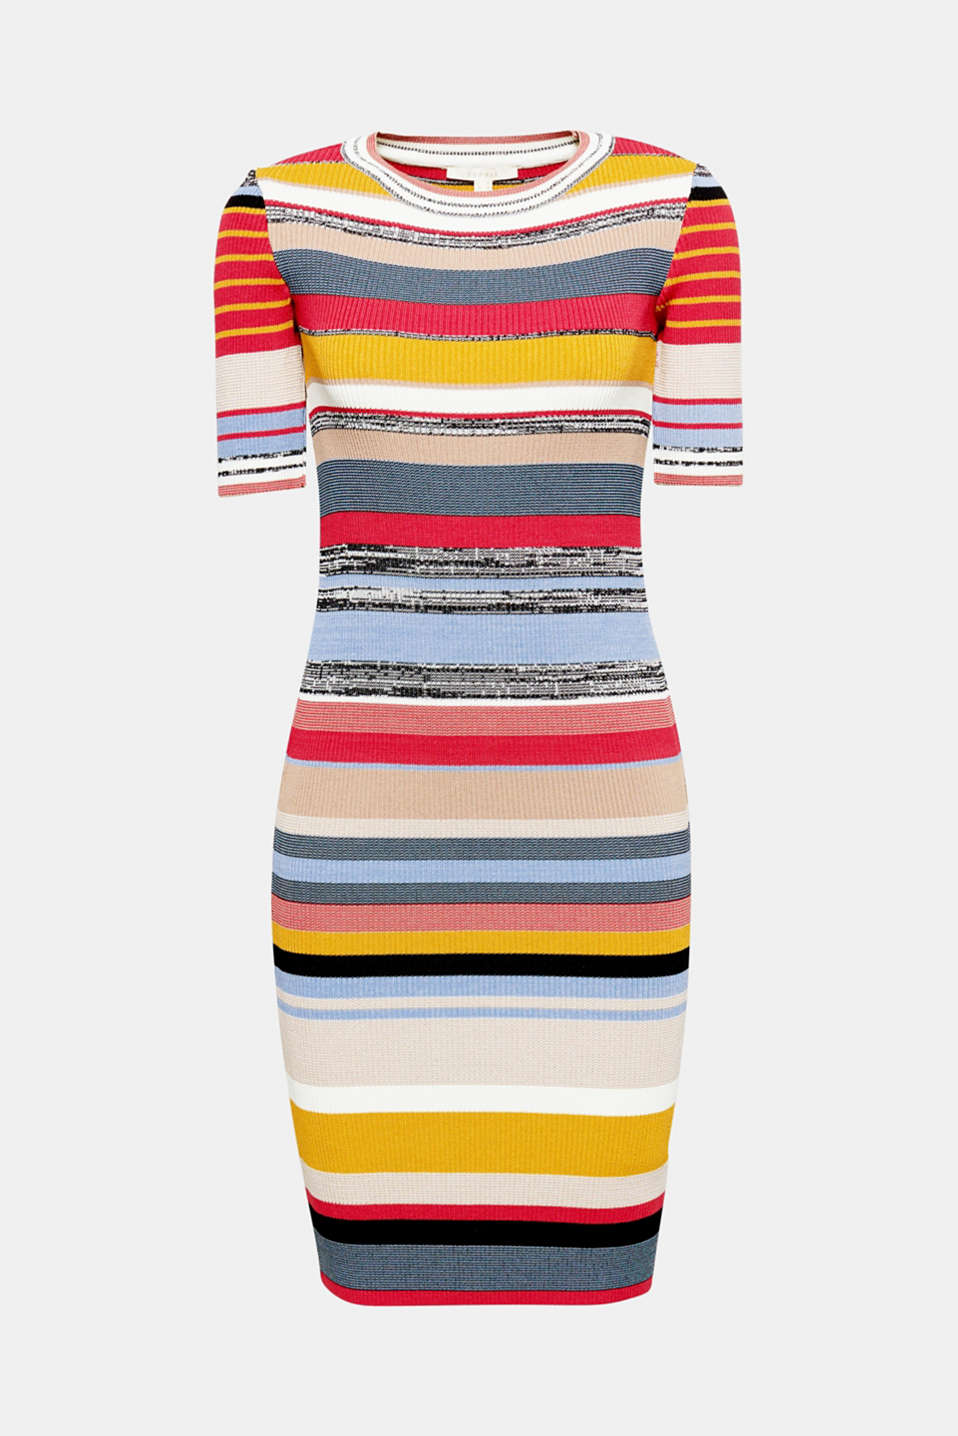 This figure-hugging dress in snug rib knit gets a feel-good look from its fashionable striped pattern.